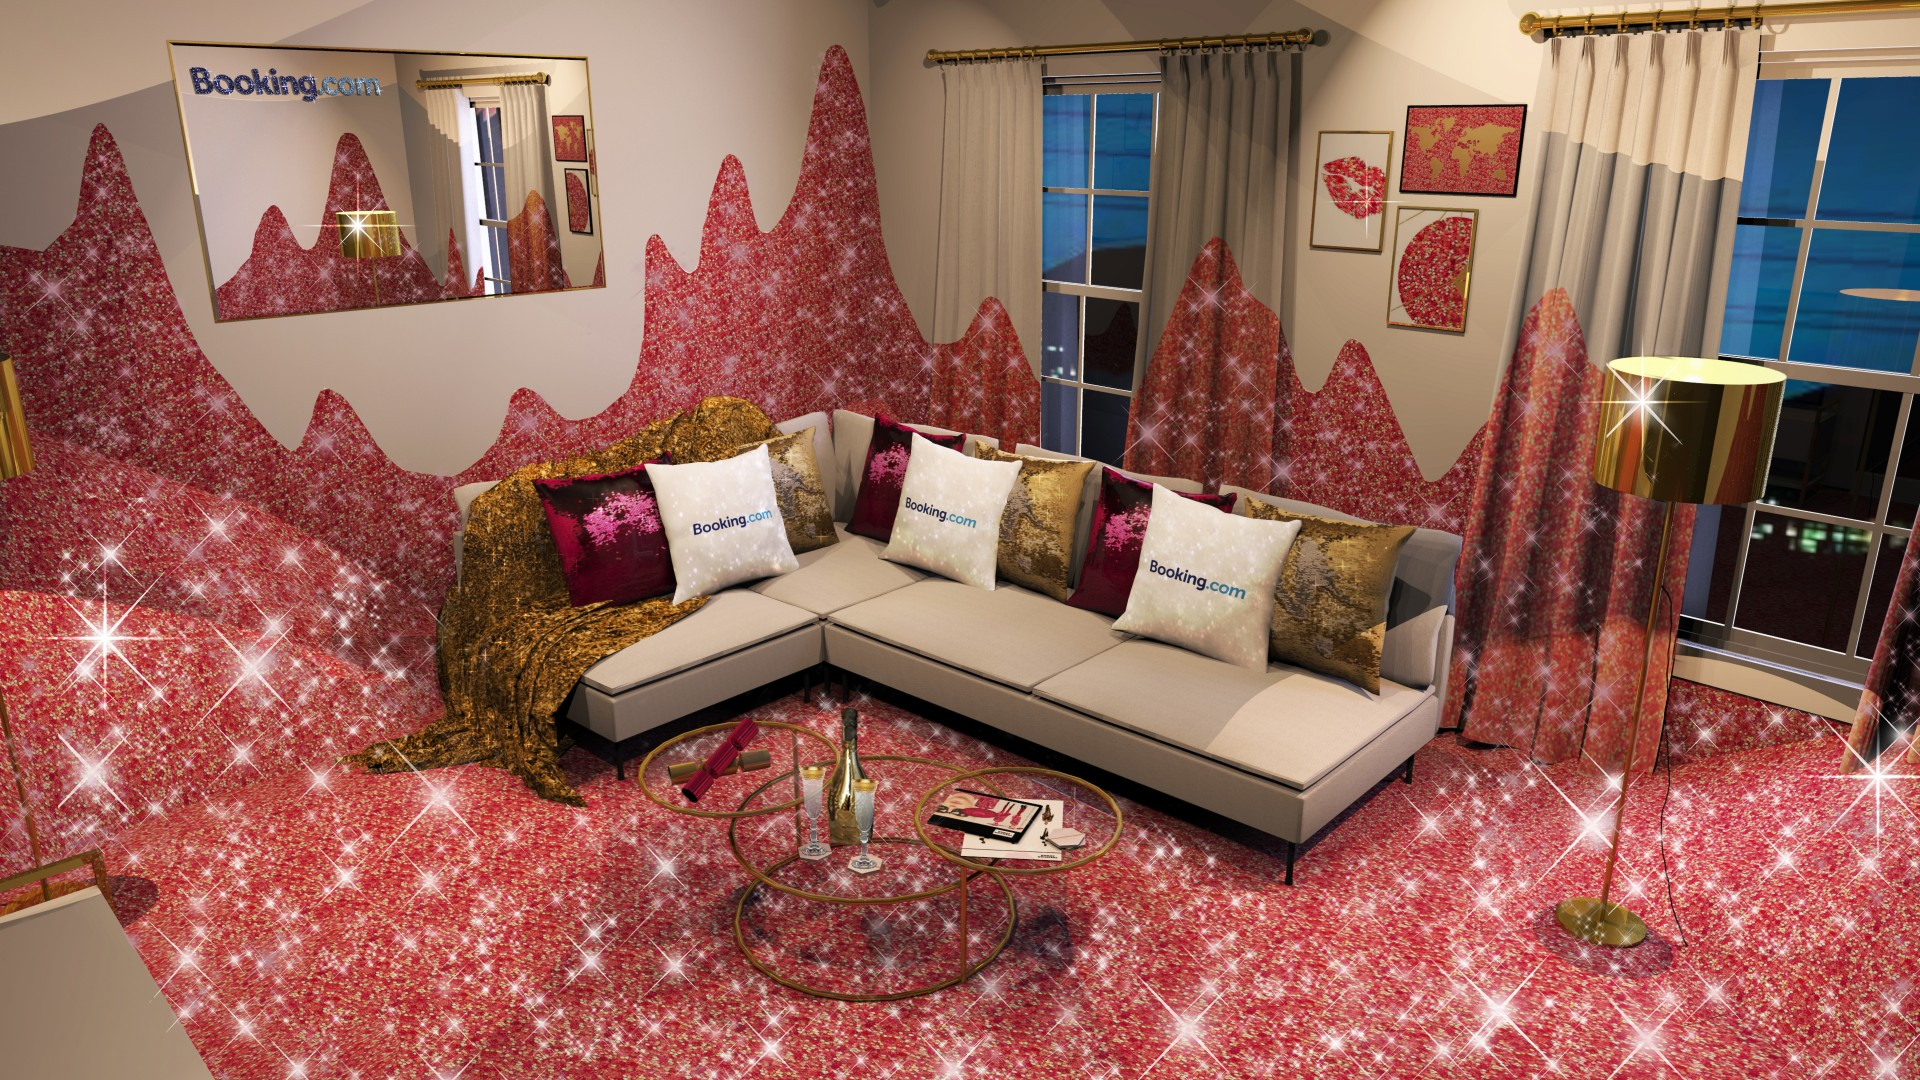 Booking.com House of Sparkle living room render visual